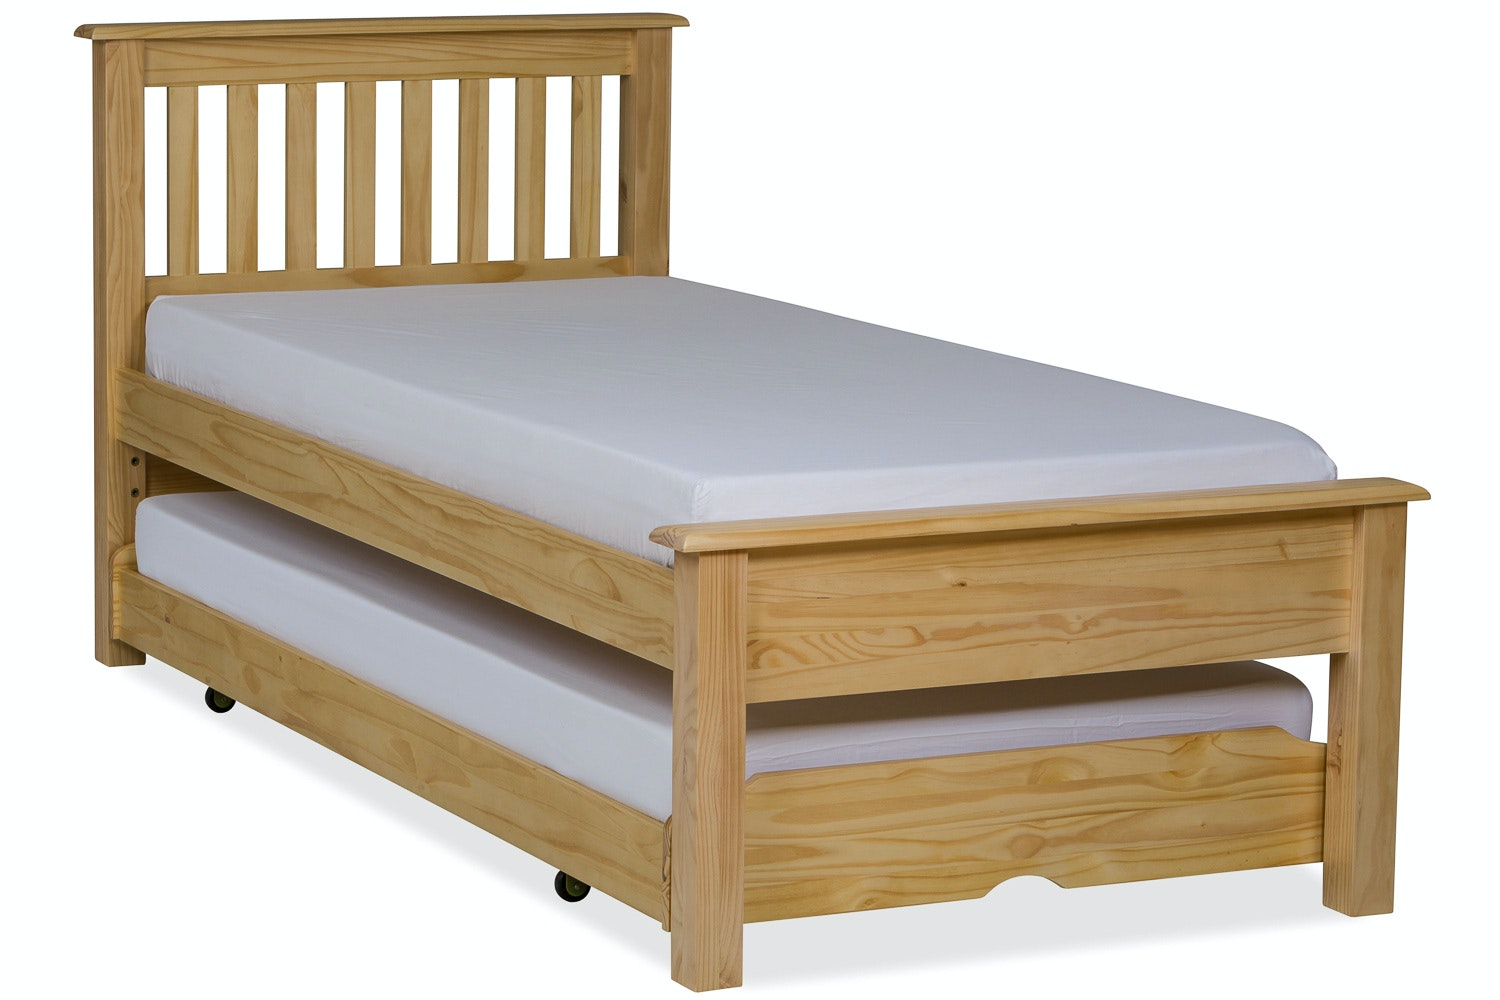 roll out bed shaker trundle bed 3ft harvey norman ireland 11163